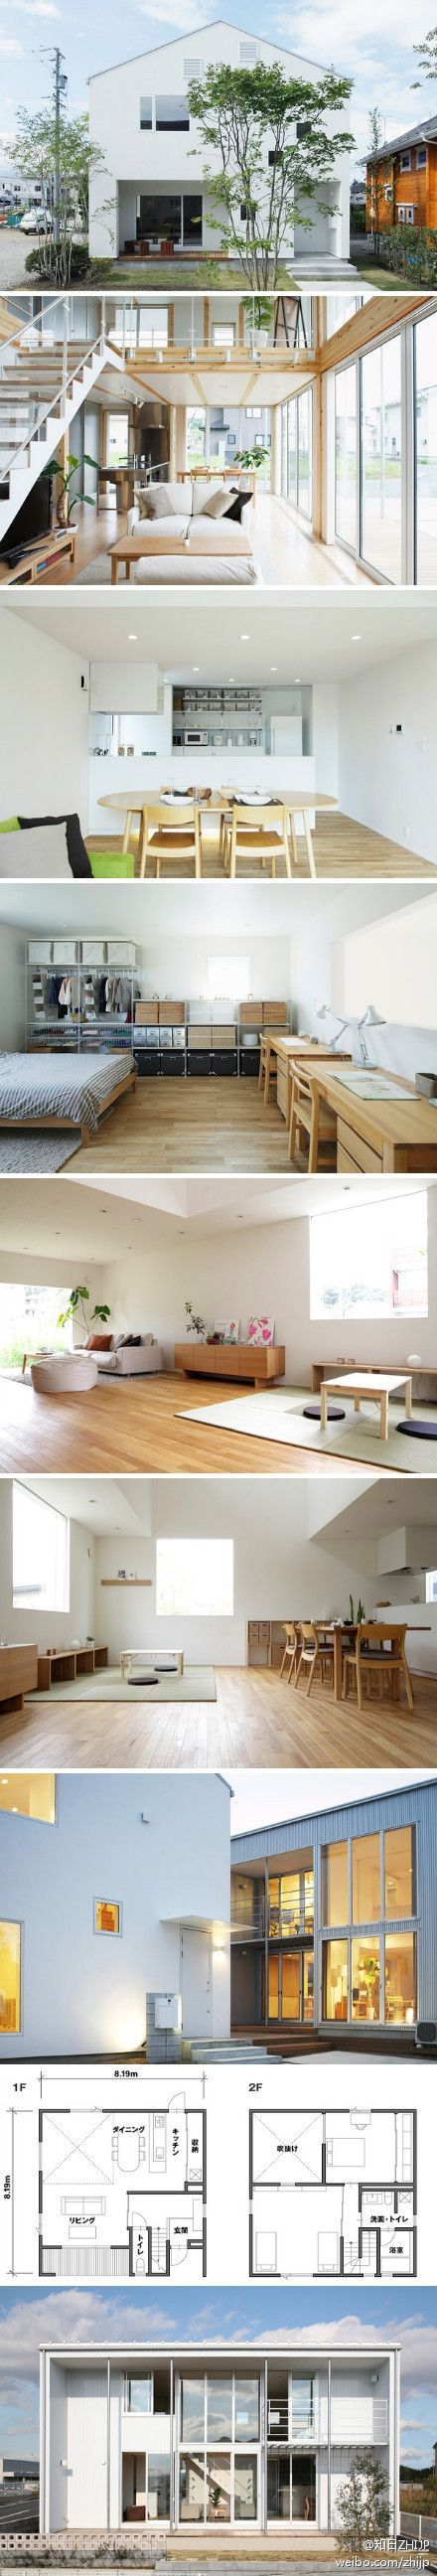 White, wood textures, furnished with MUJI. Indoor greenery. Omg this'd be pretty...but not with THAT house or decor